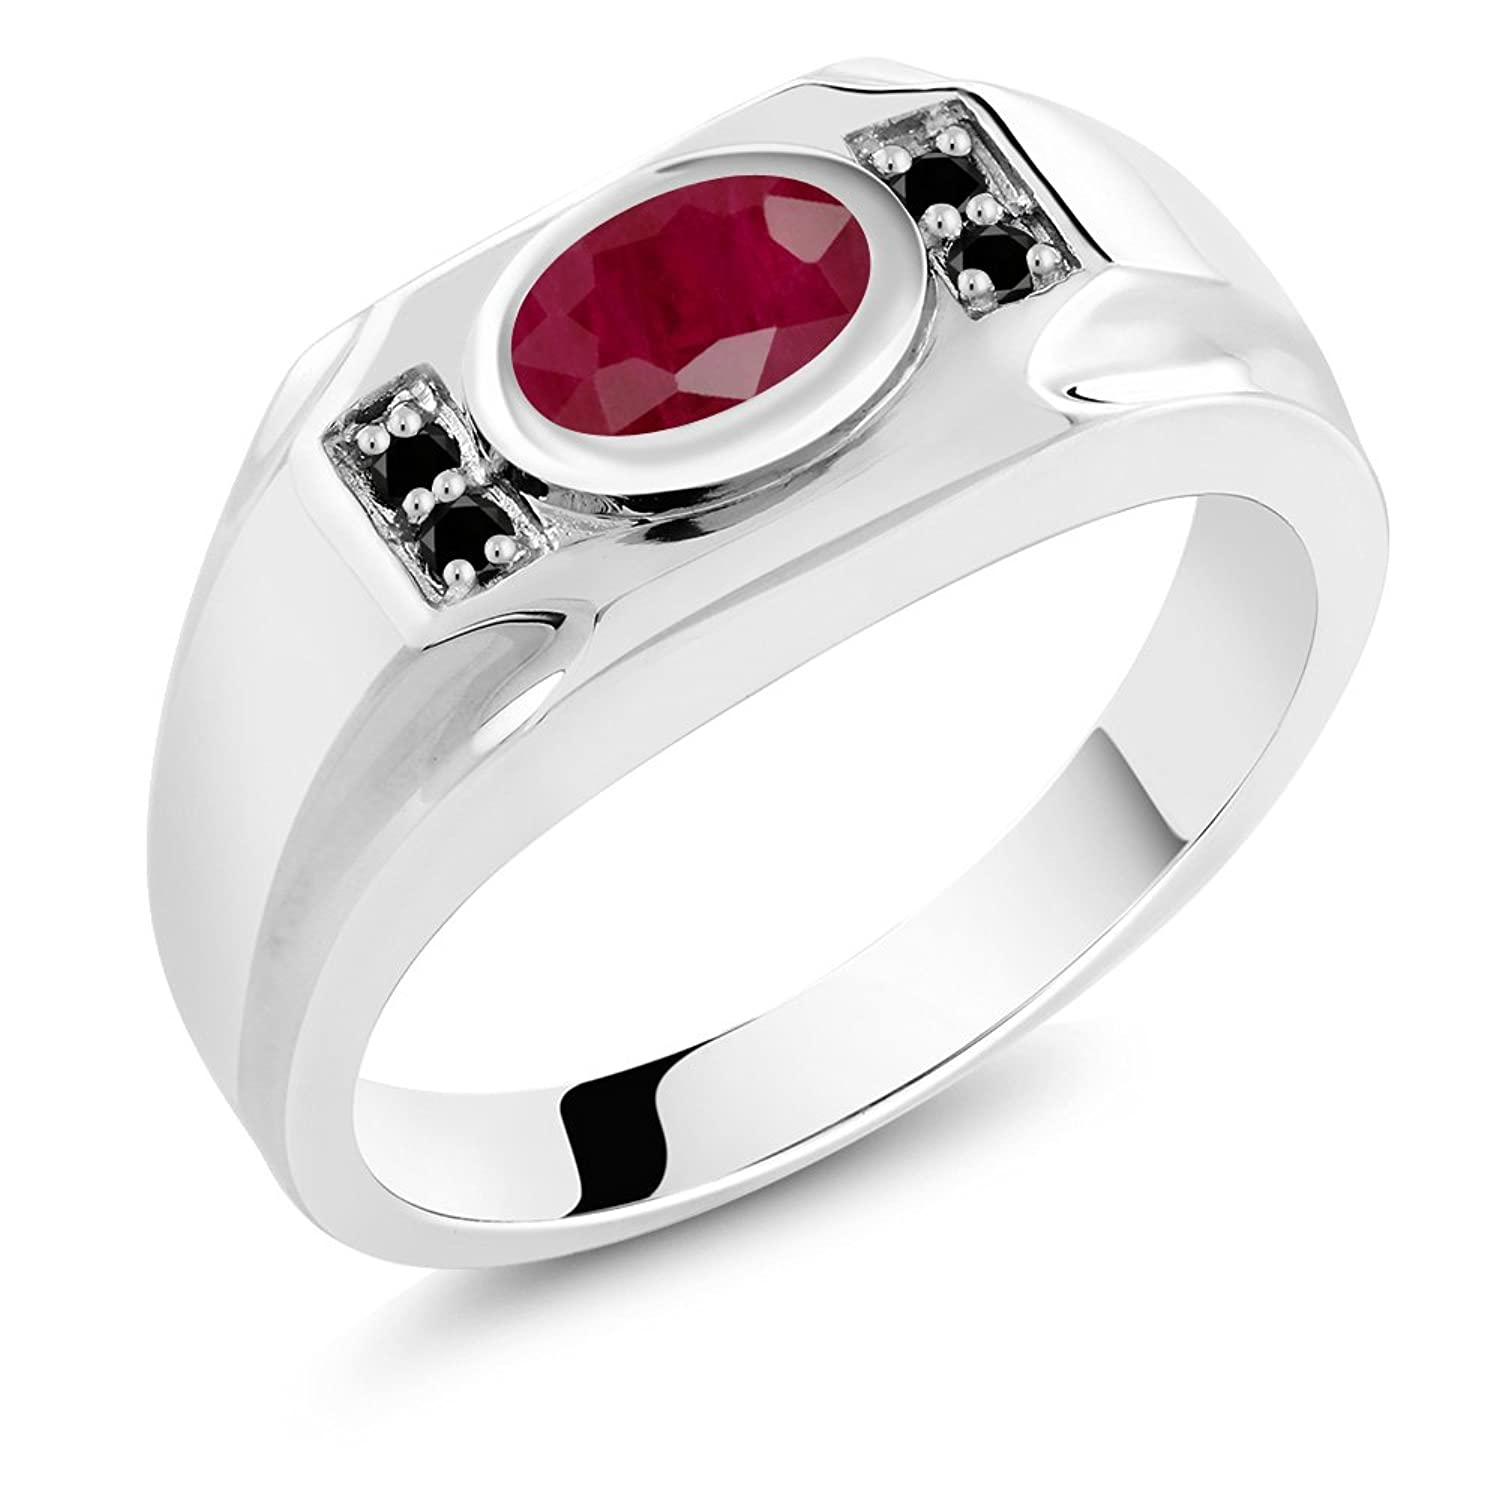 2.02 Ct Oval Red Ruby & Black Diamond 925 Sterling Silver Men's Ring (Available in size 7, 8, 9, 10, 11, 12, 13)